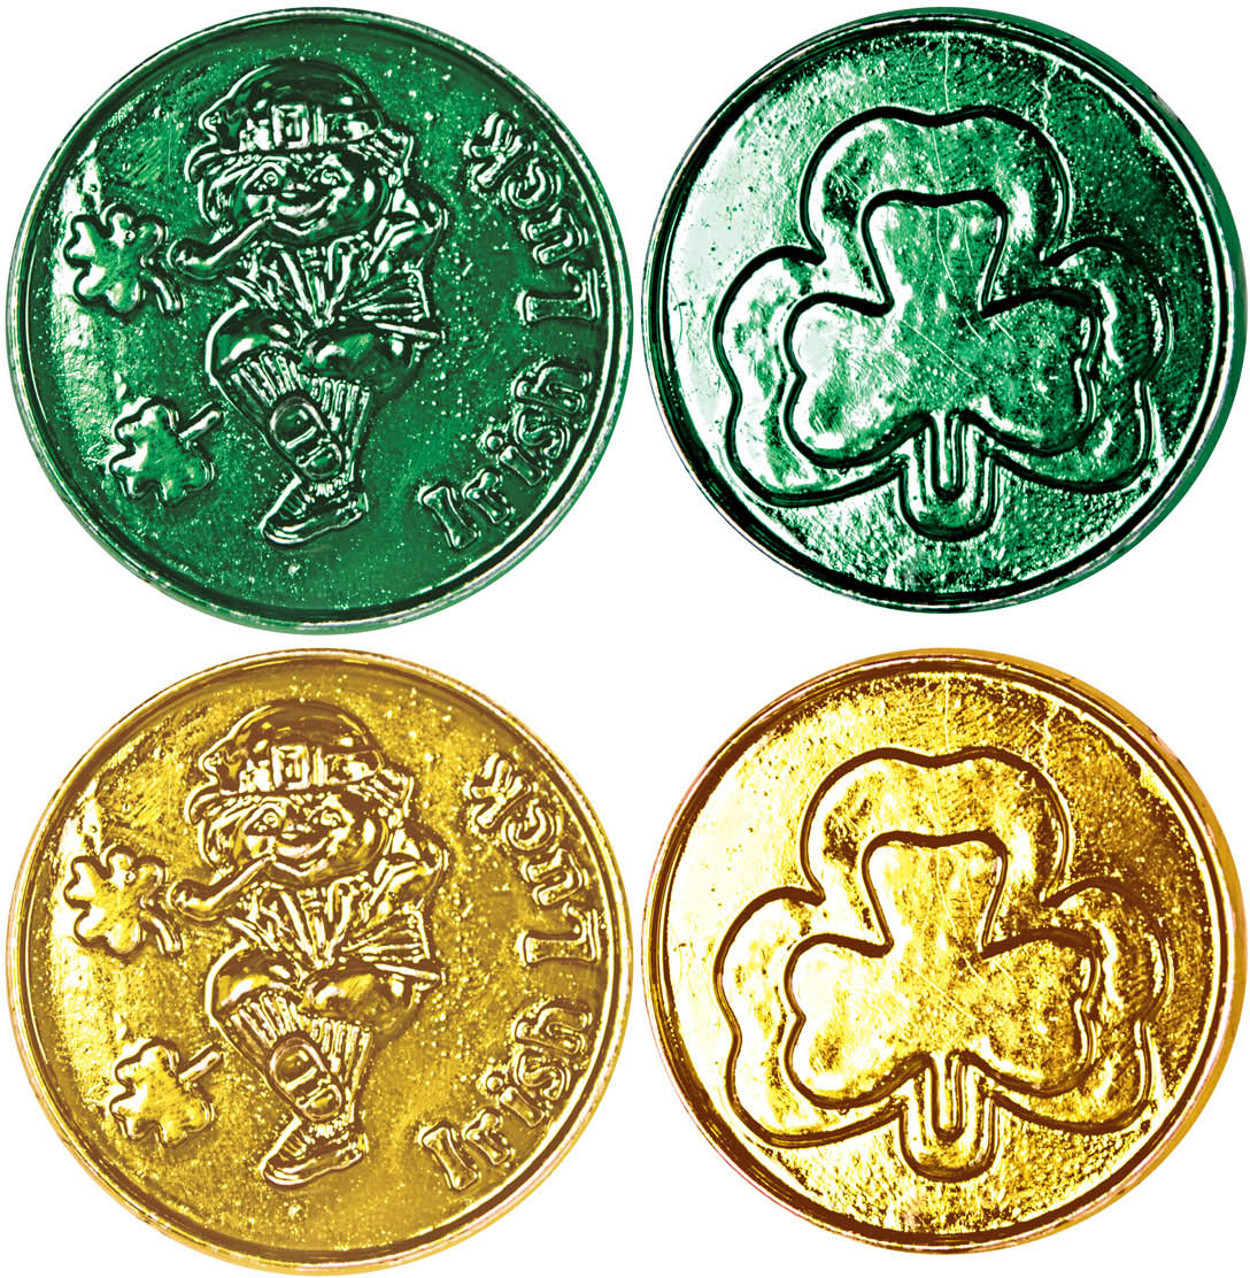 Set of 40 Gold And Green Saint Patrick's Day Toy Play Money Coins